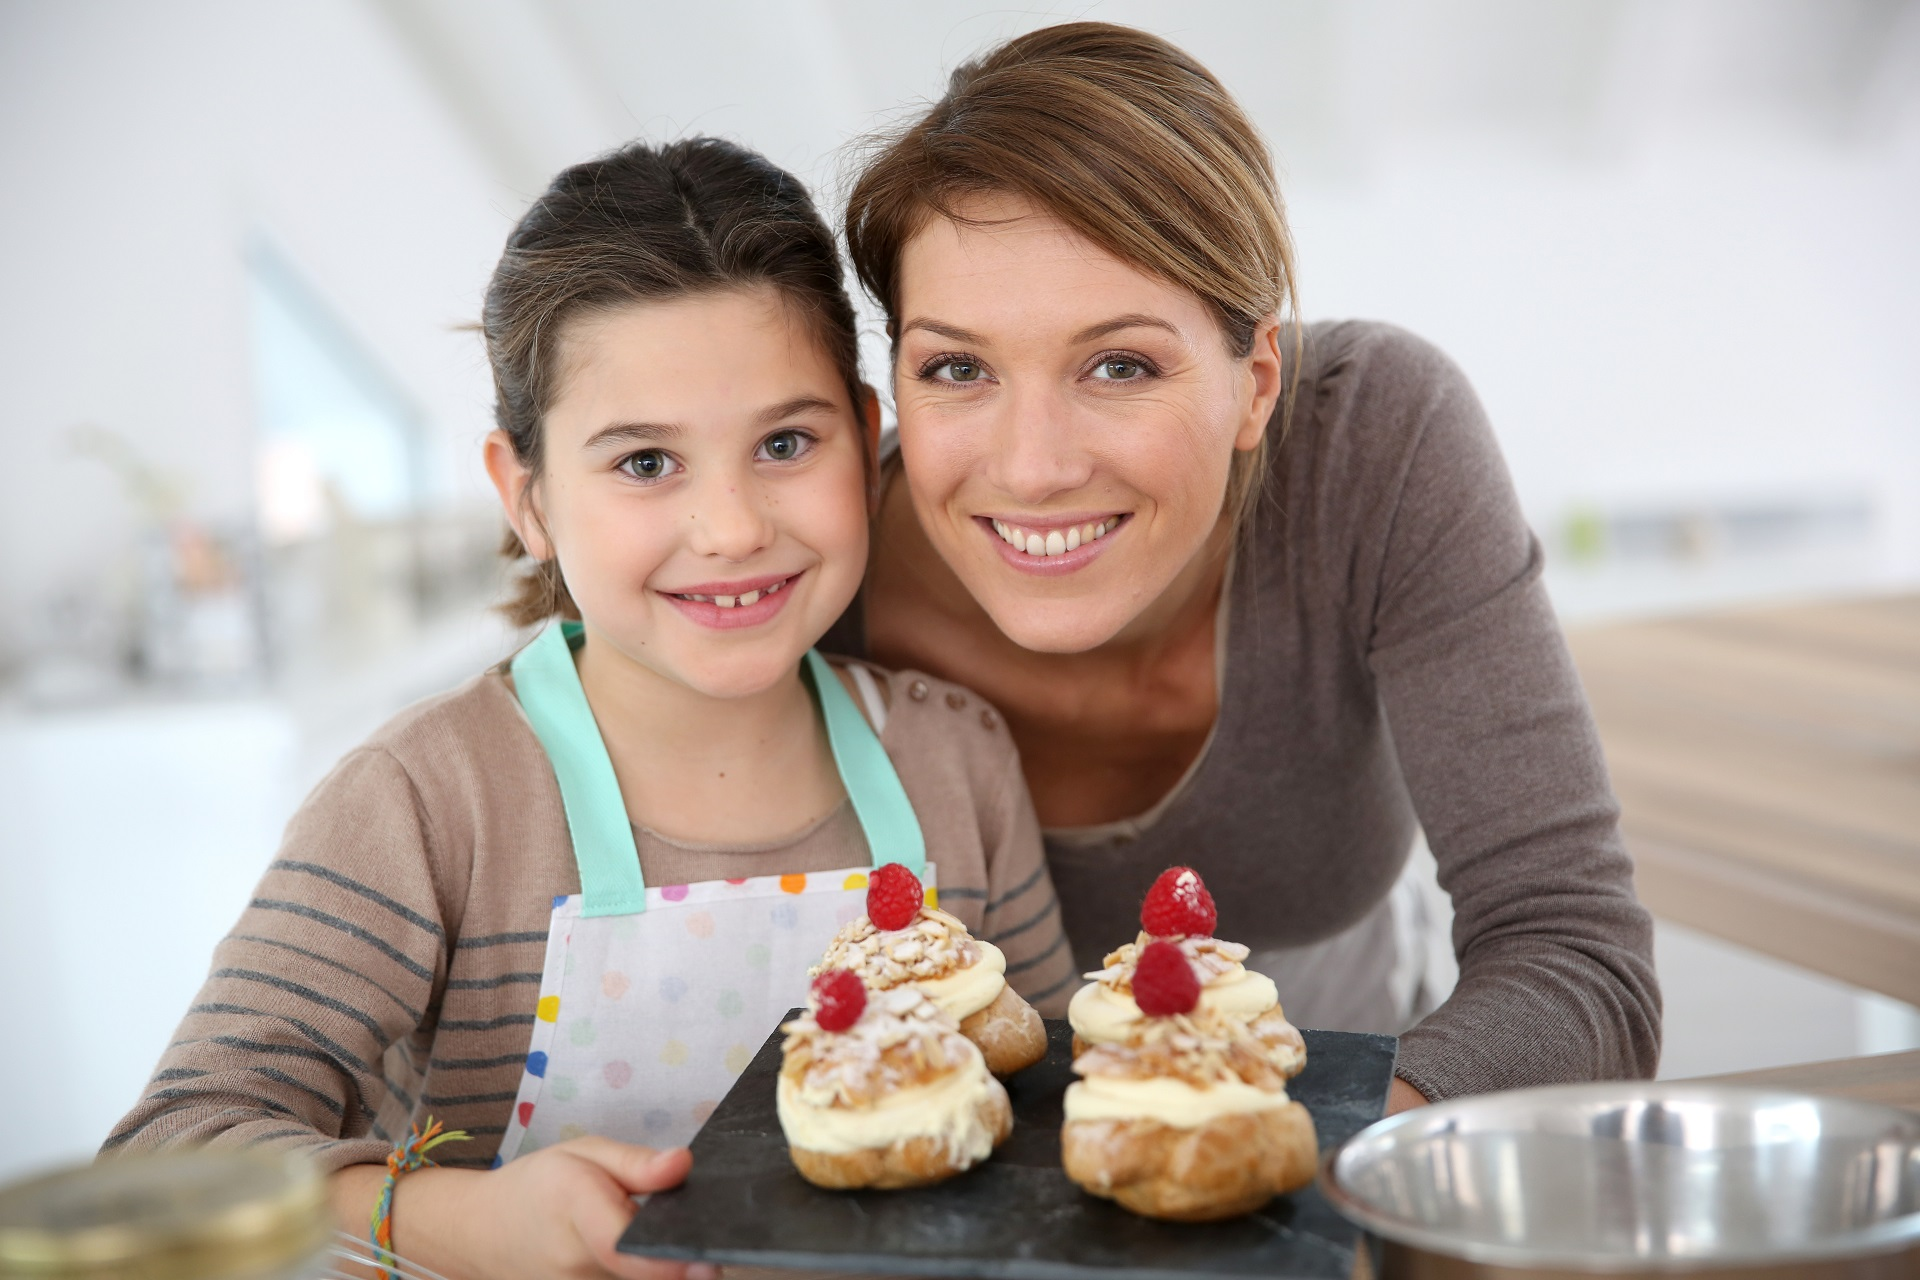 Mothers and women working from home can start a home food business on the side.